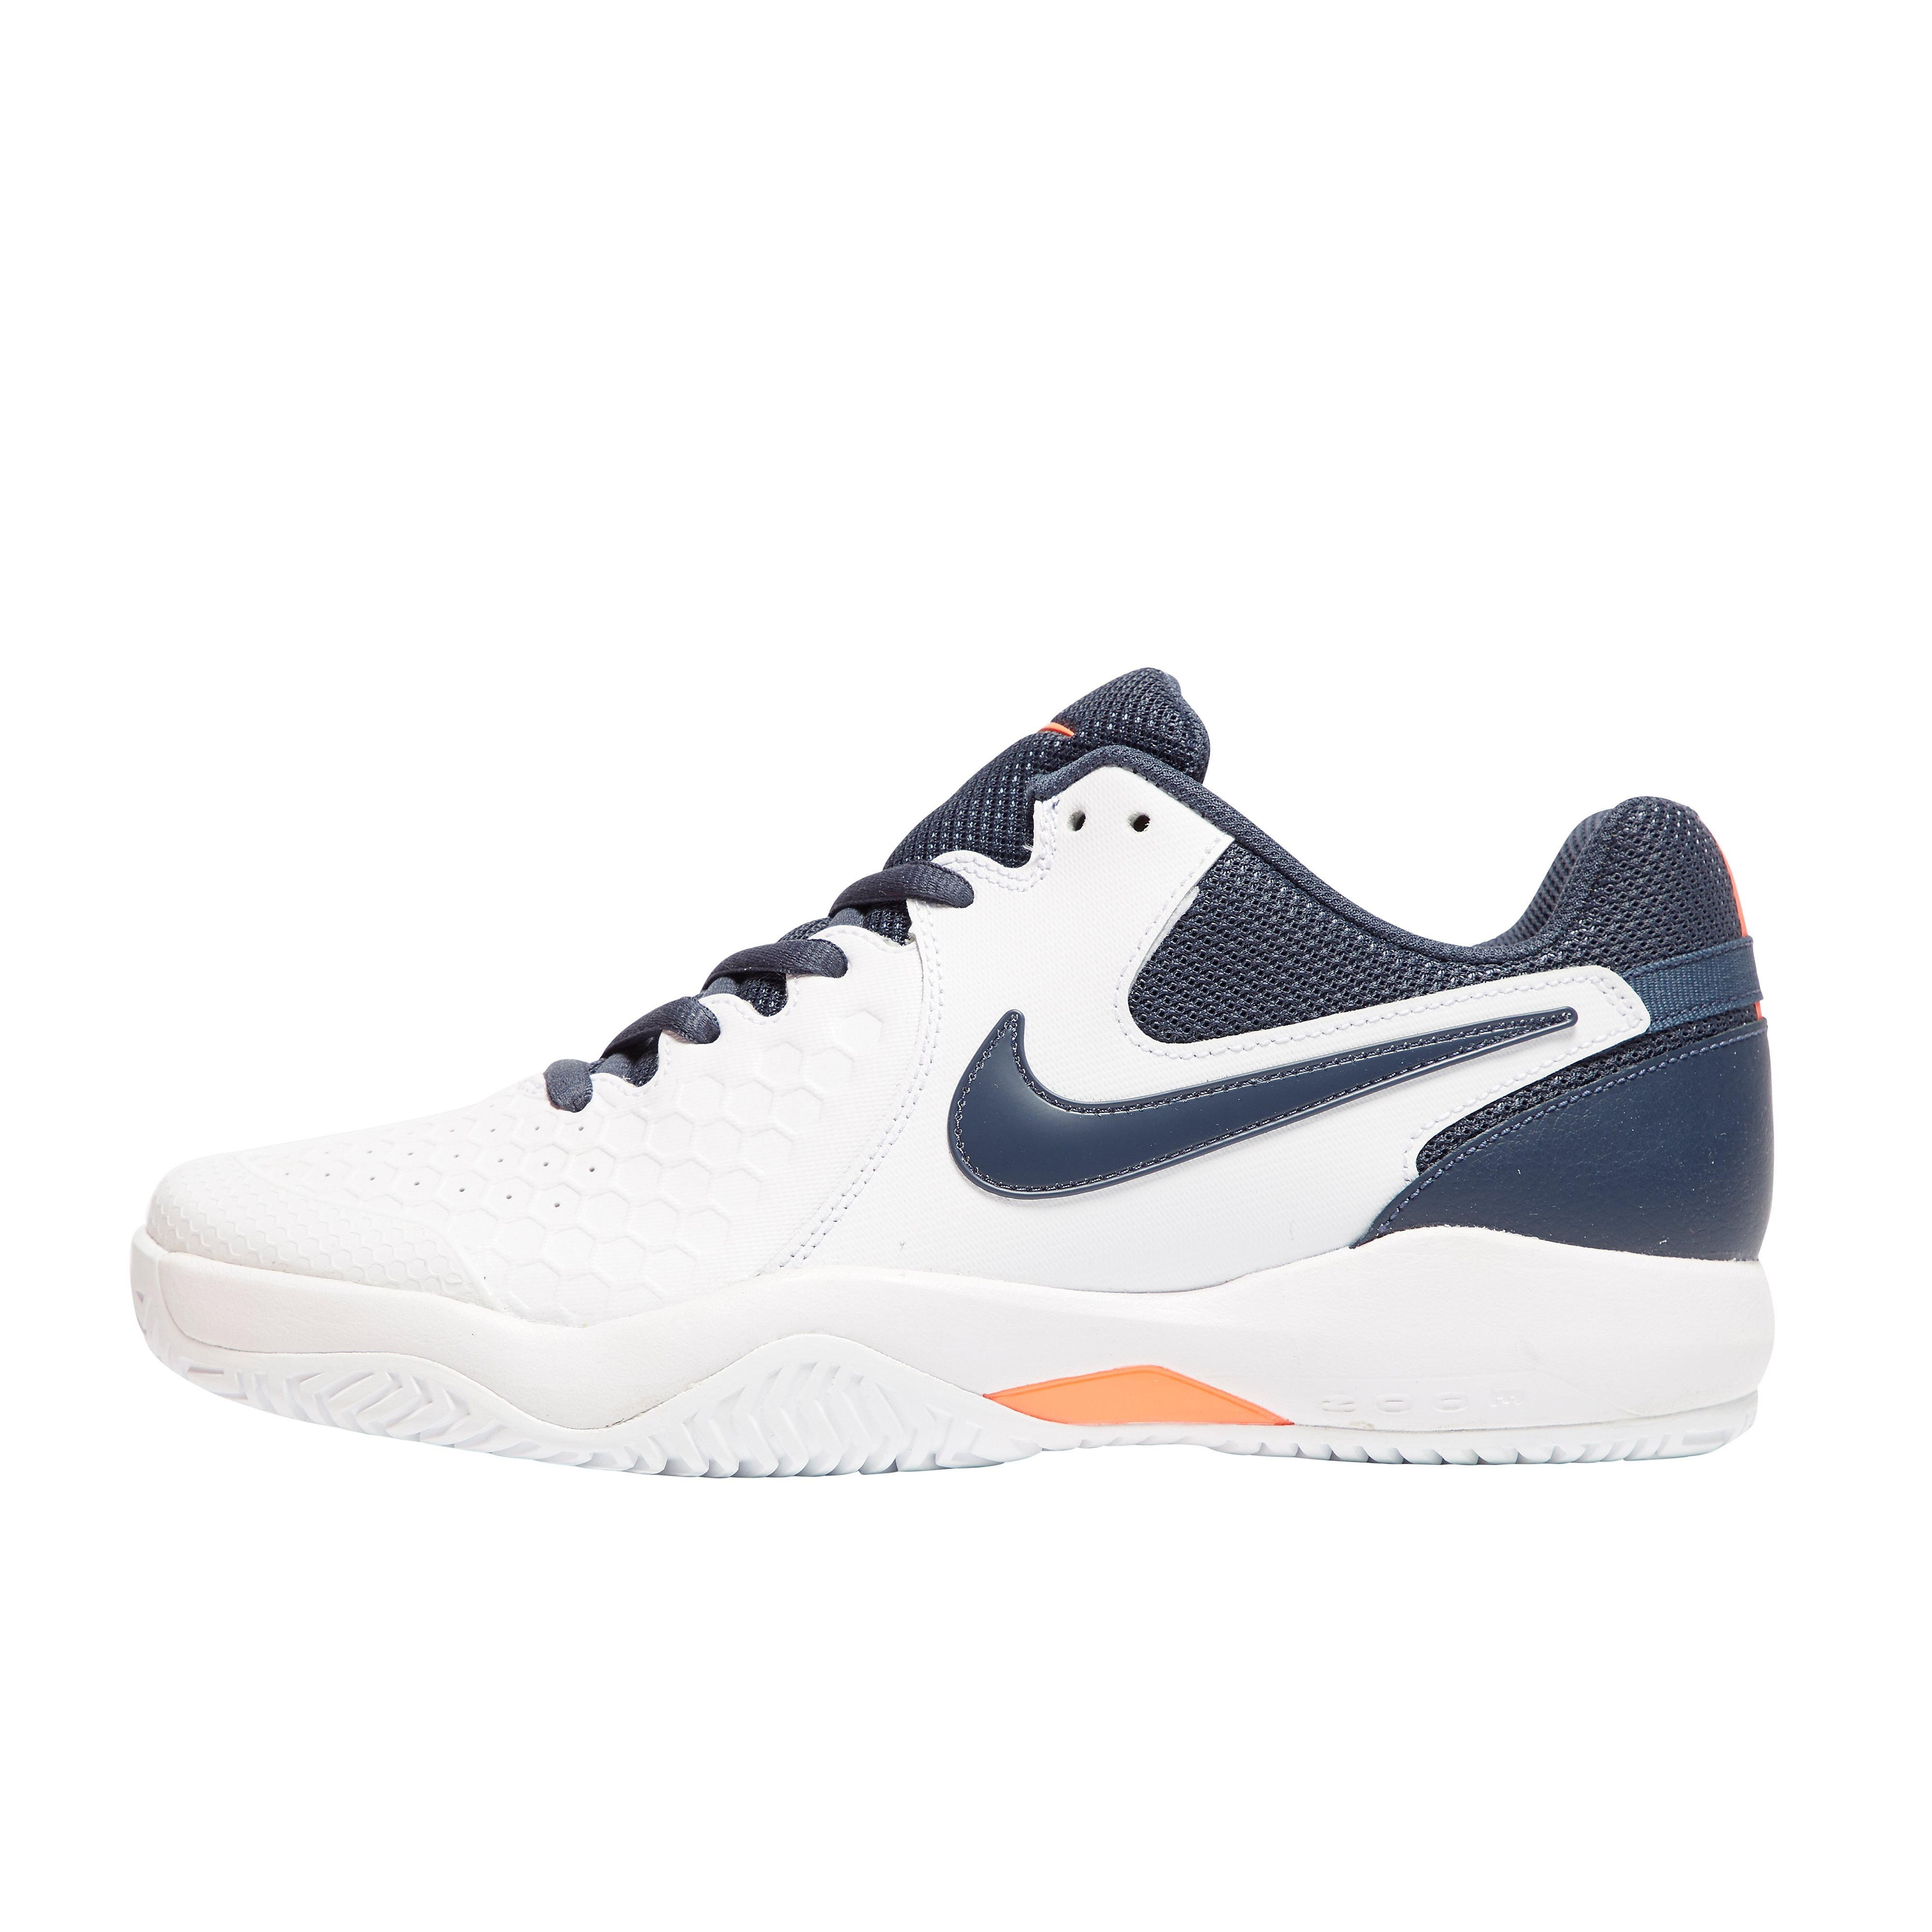 Nike Court Air Zoom Resistance Men's Tennis Shoes